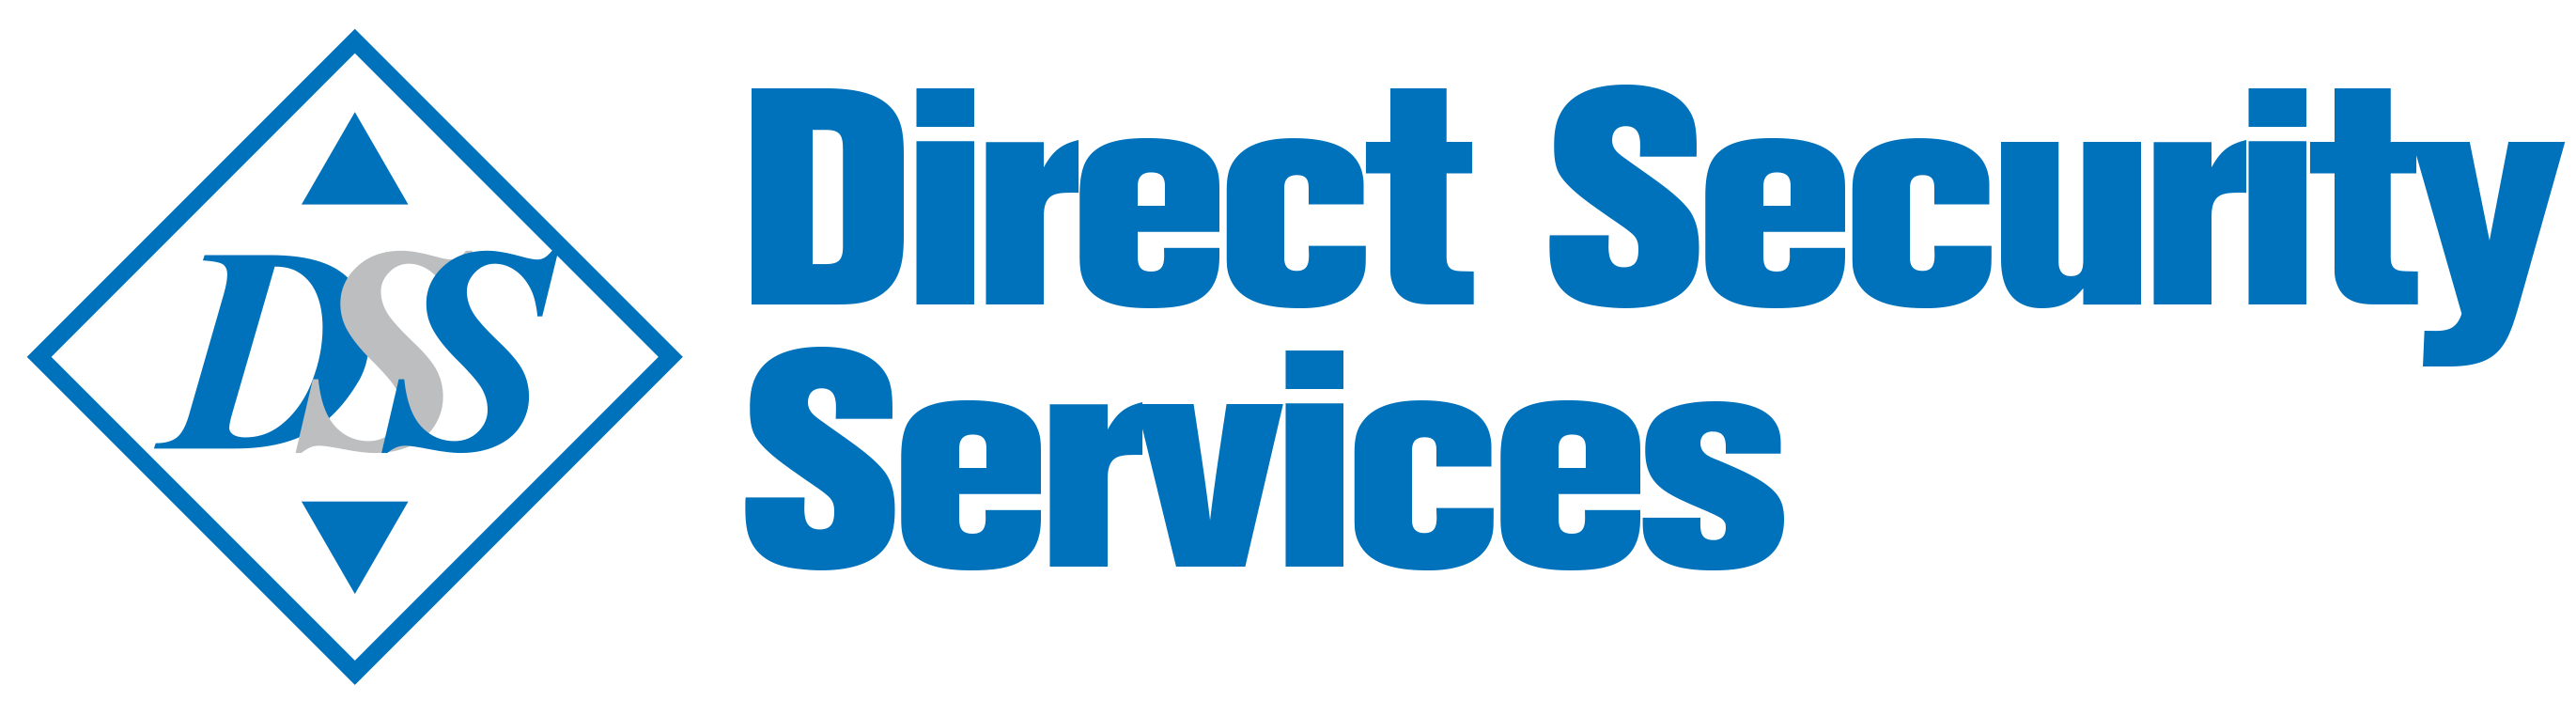 Inc Services Adt Security Number Phone